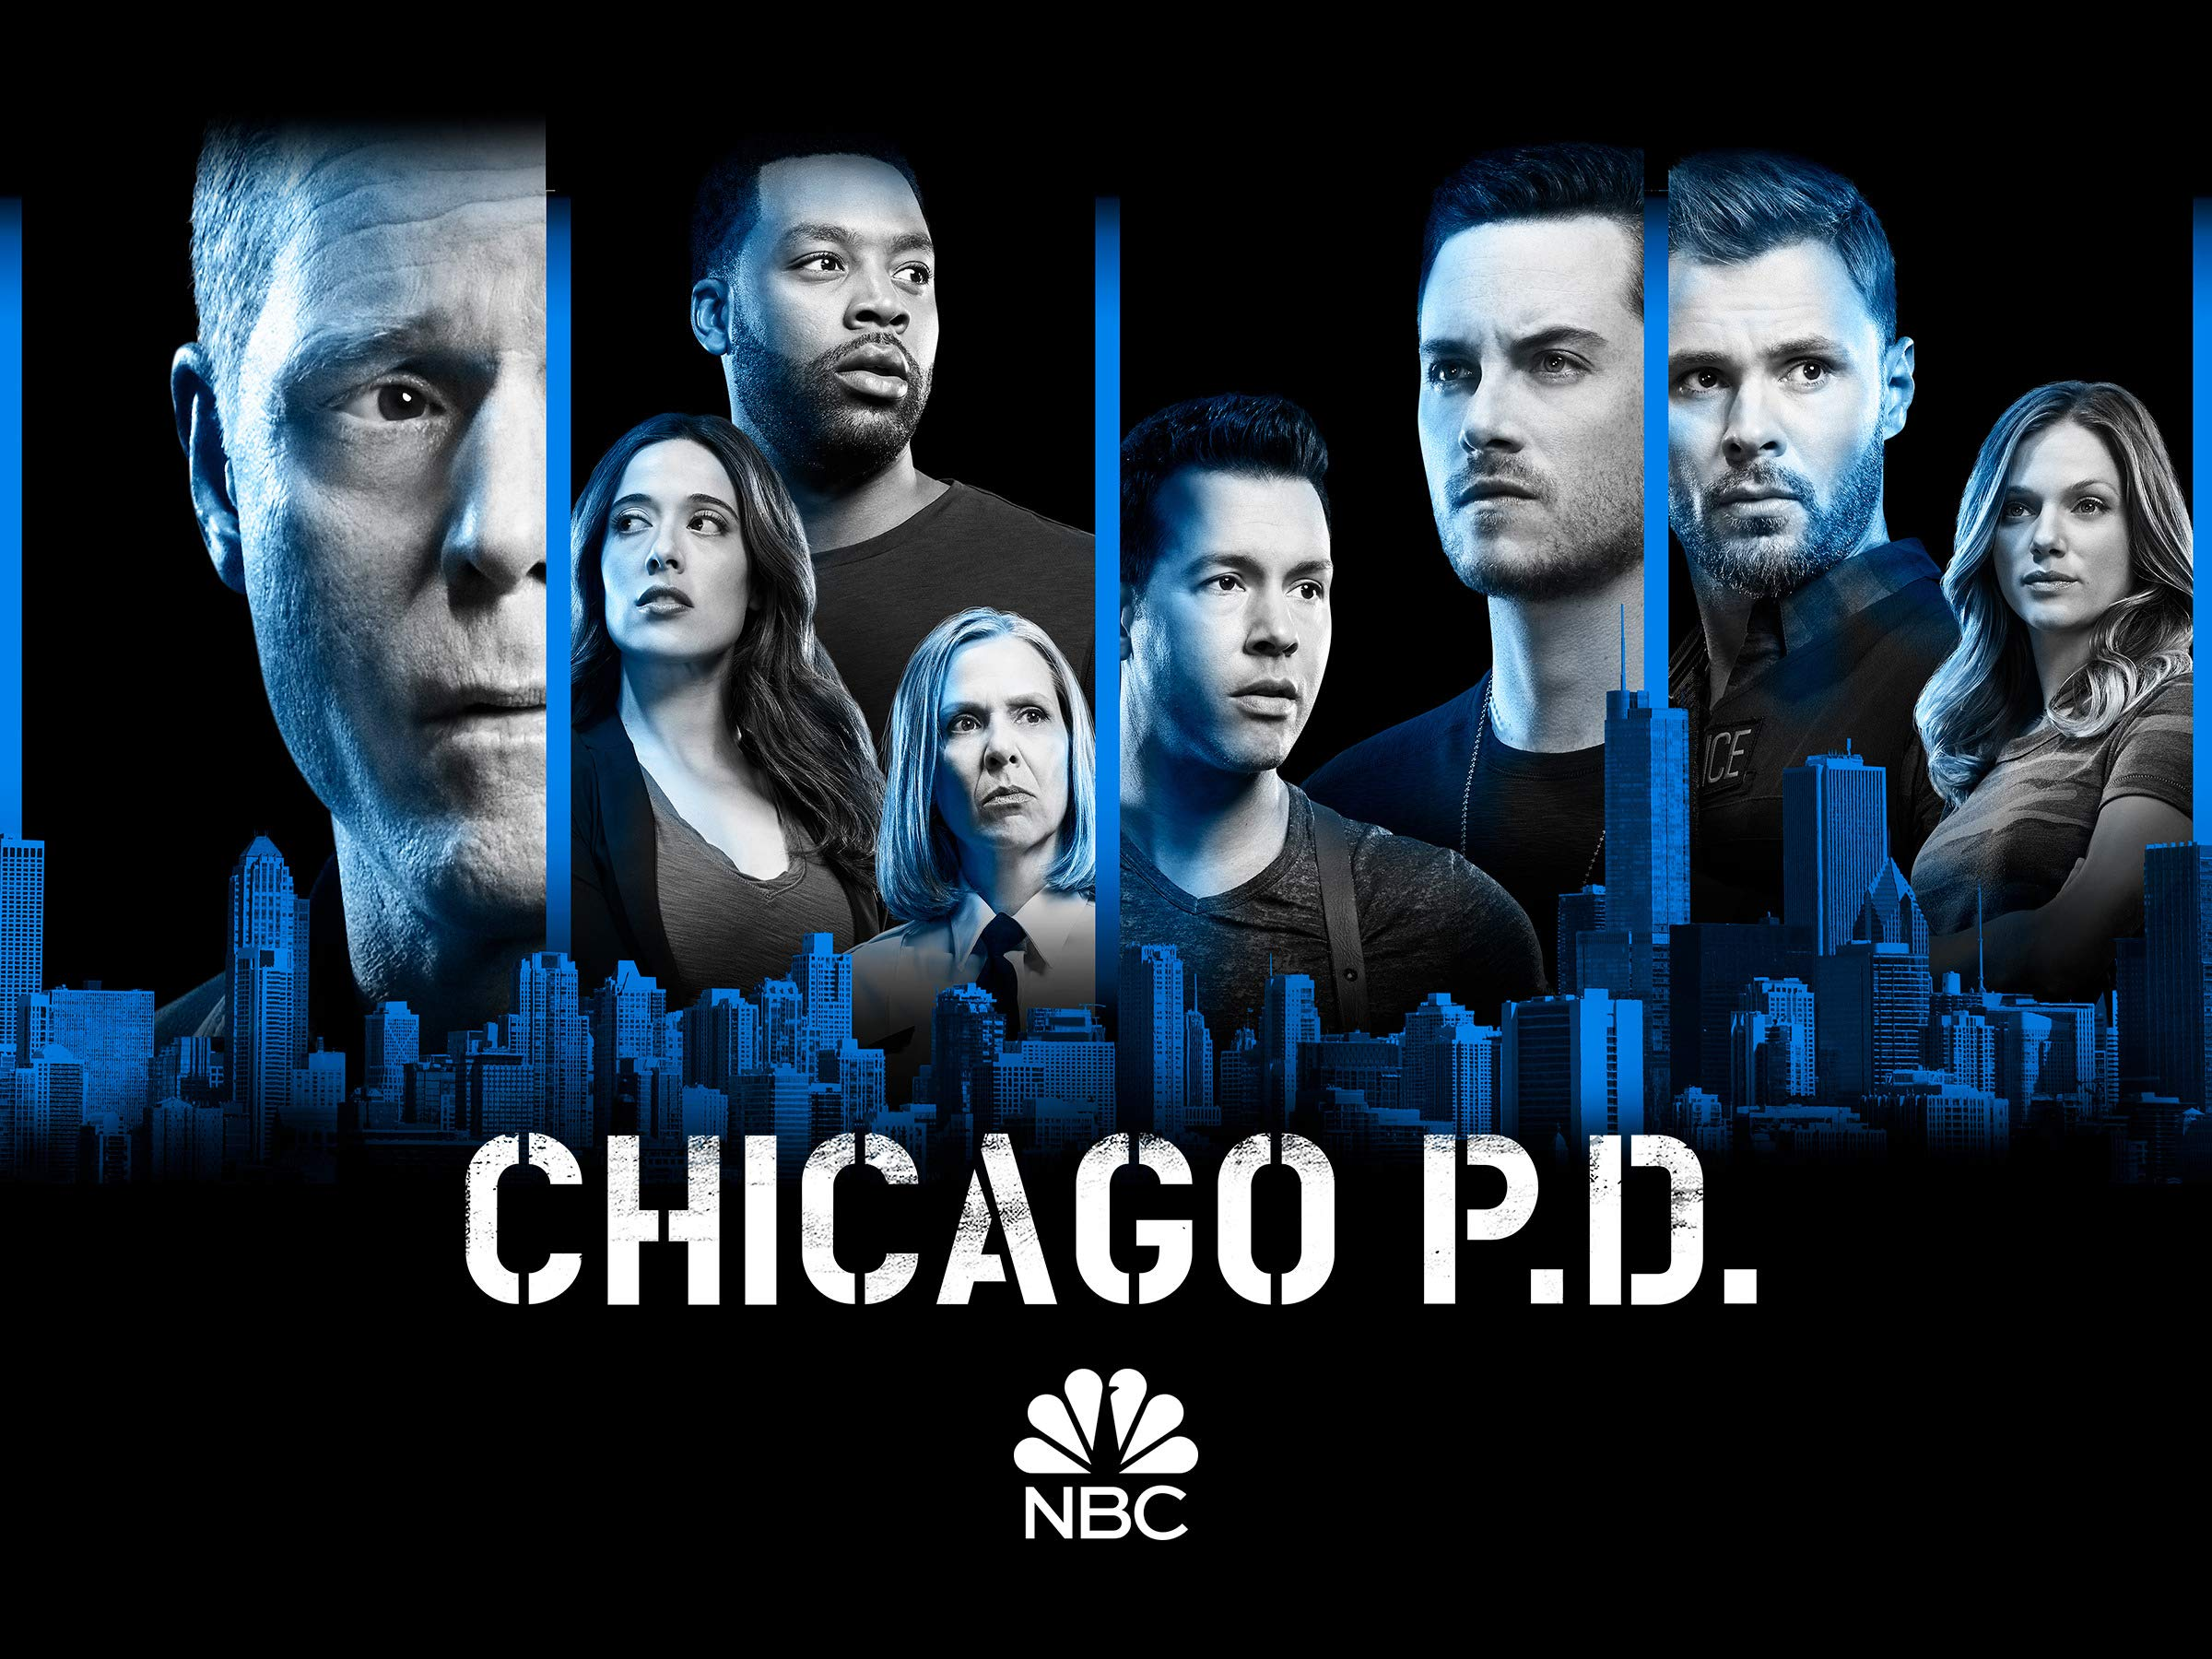 chicago pd putlockers season 2